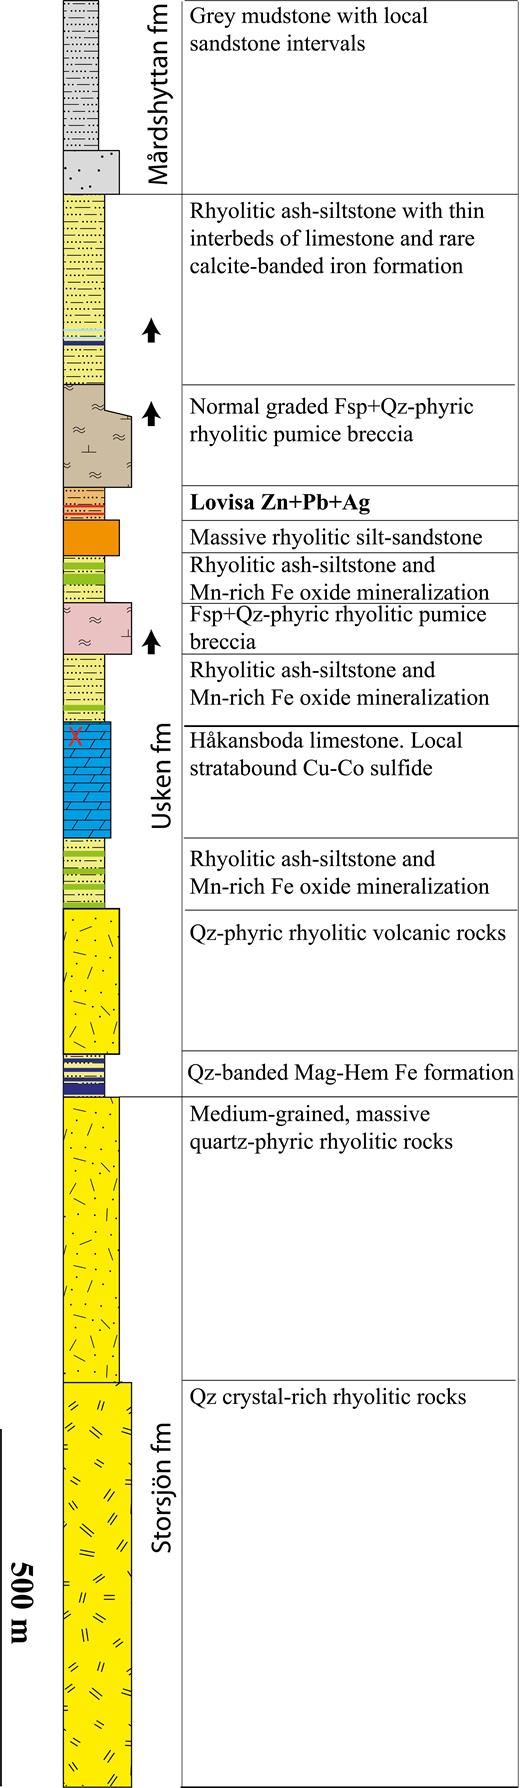 Stratigraphic column of the northern Guldsmedshyttan area, showing the position of the Lovisa Zn-Pb deposit in relation to stratigraphic units defined by Lundström (1983). The stratigraphy in the Usken Formation is revised according to results from the current study, whereas the Storsjön and Mårdshyttan Formations are drawn schematically based on Lundström (1983) and Carlon and Bleeker (1988). The color legend is consistent with Figures 3, 5, and 6. Abbreviations: Fsp = feldspar, Hem = hematite, Mag = magnetite, Qz = quartz.